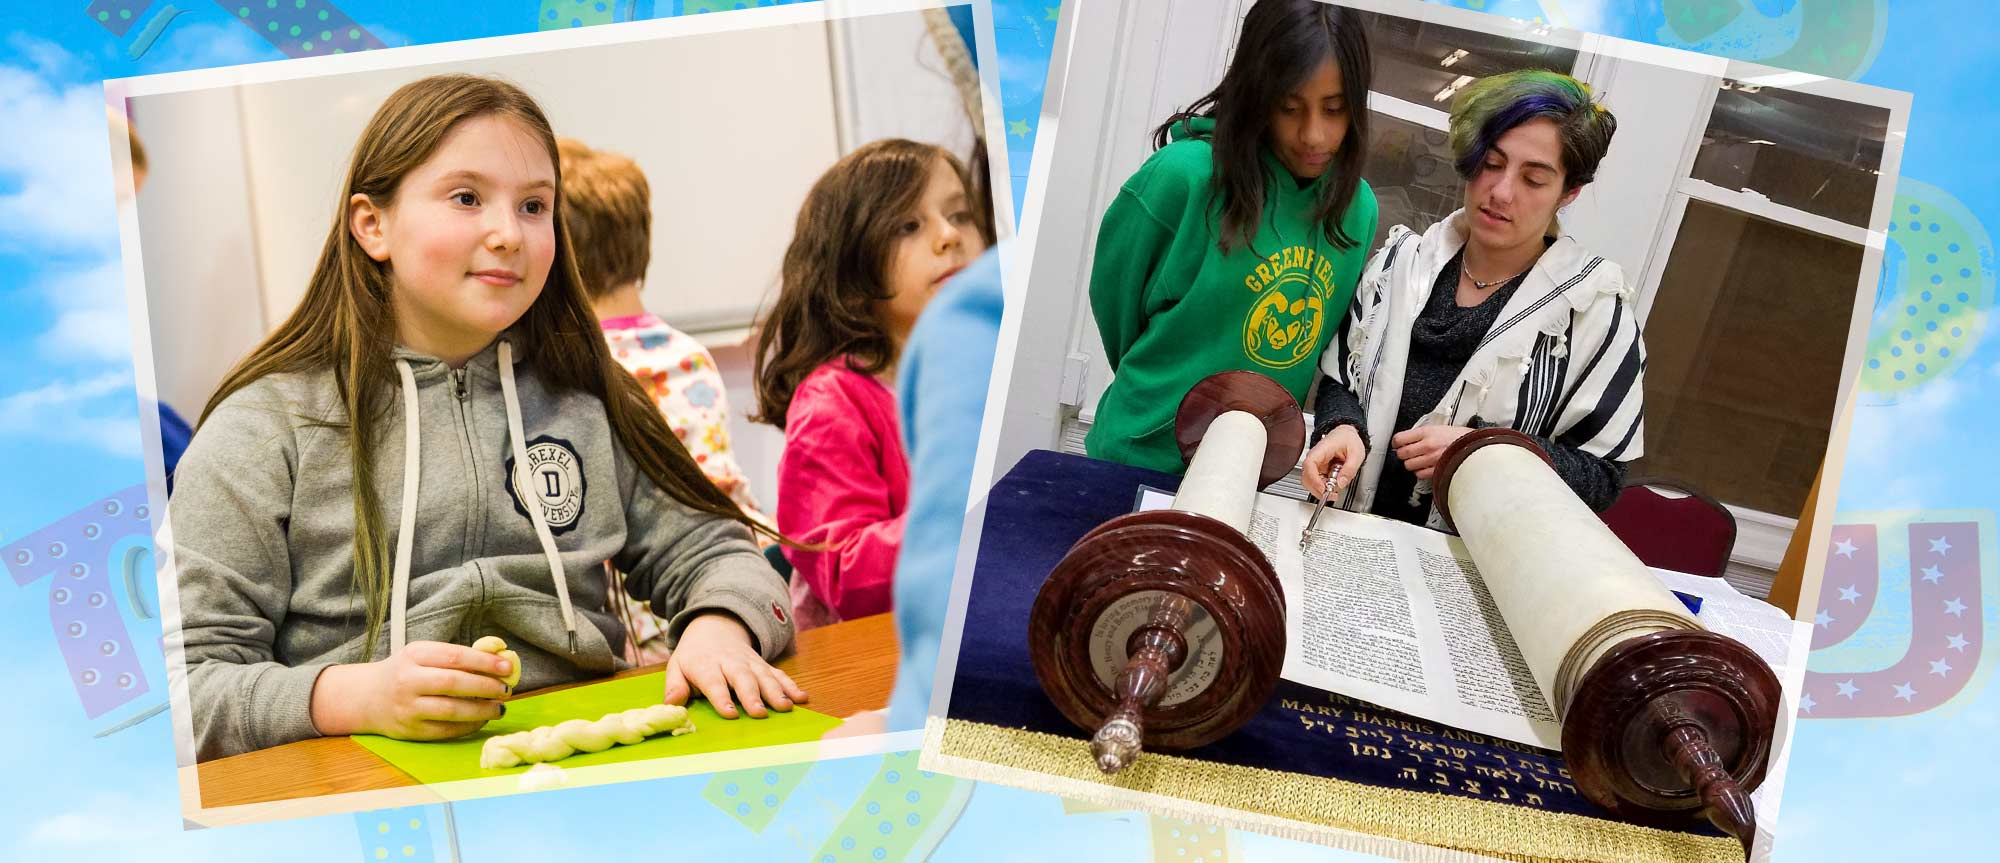 BMitzvah Learning at Makom Community